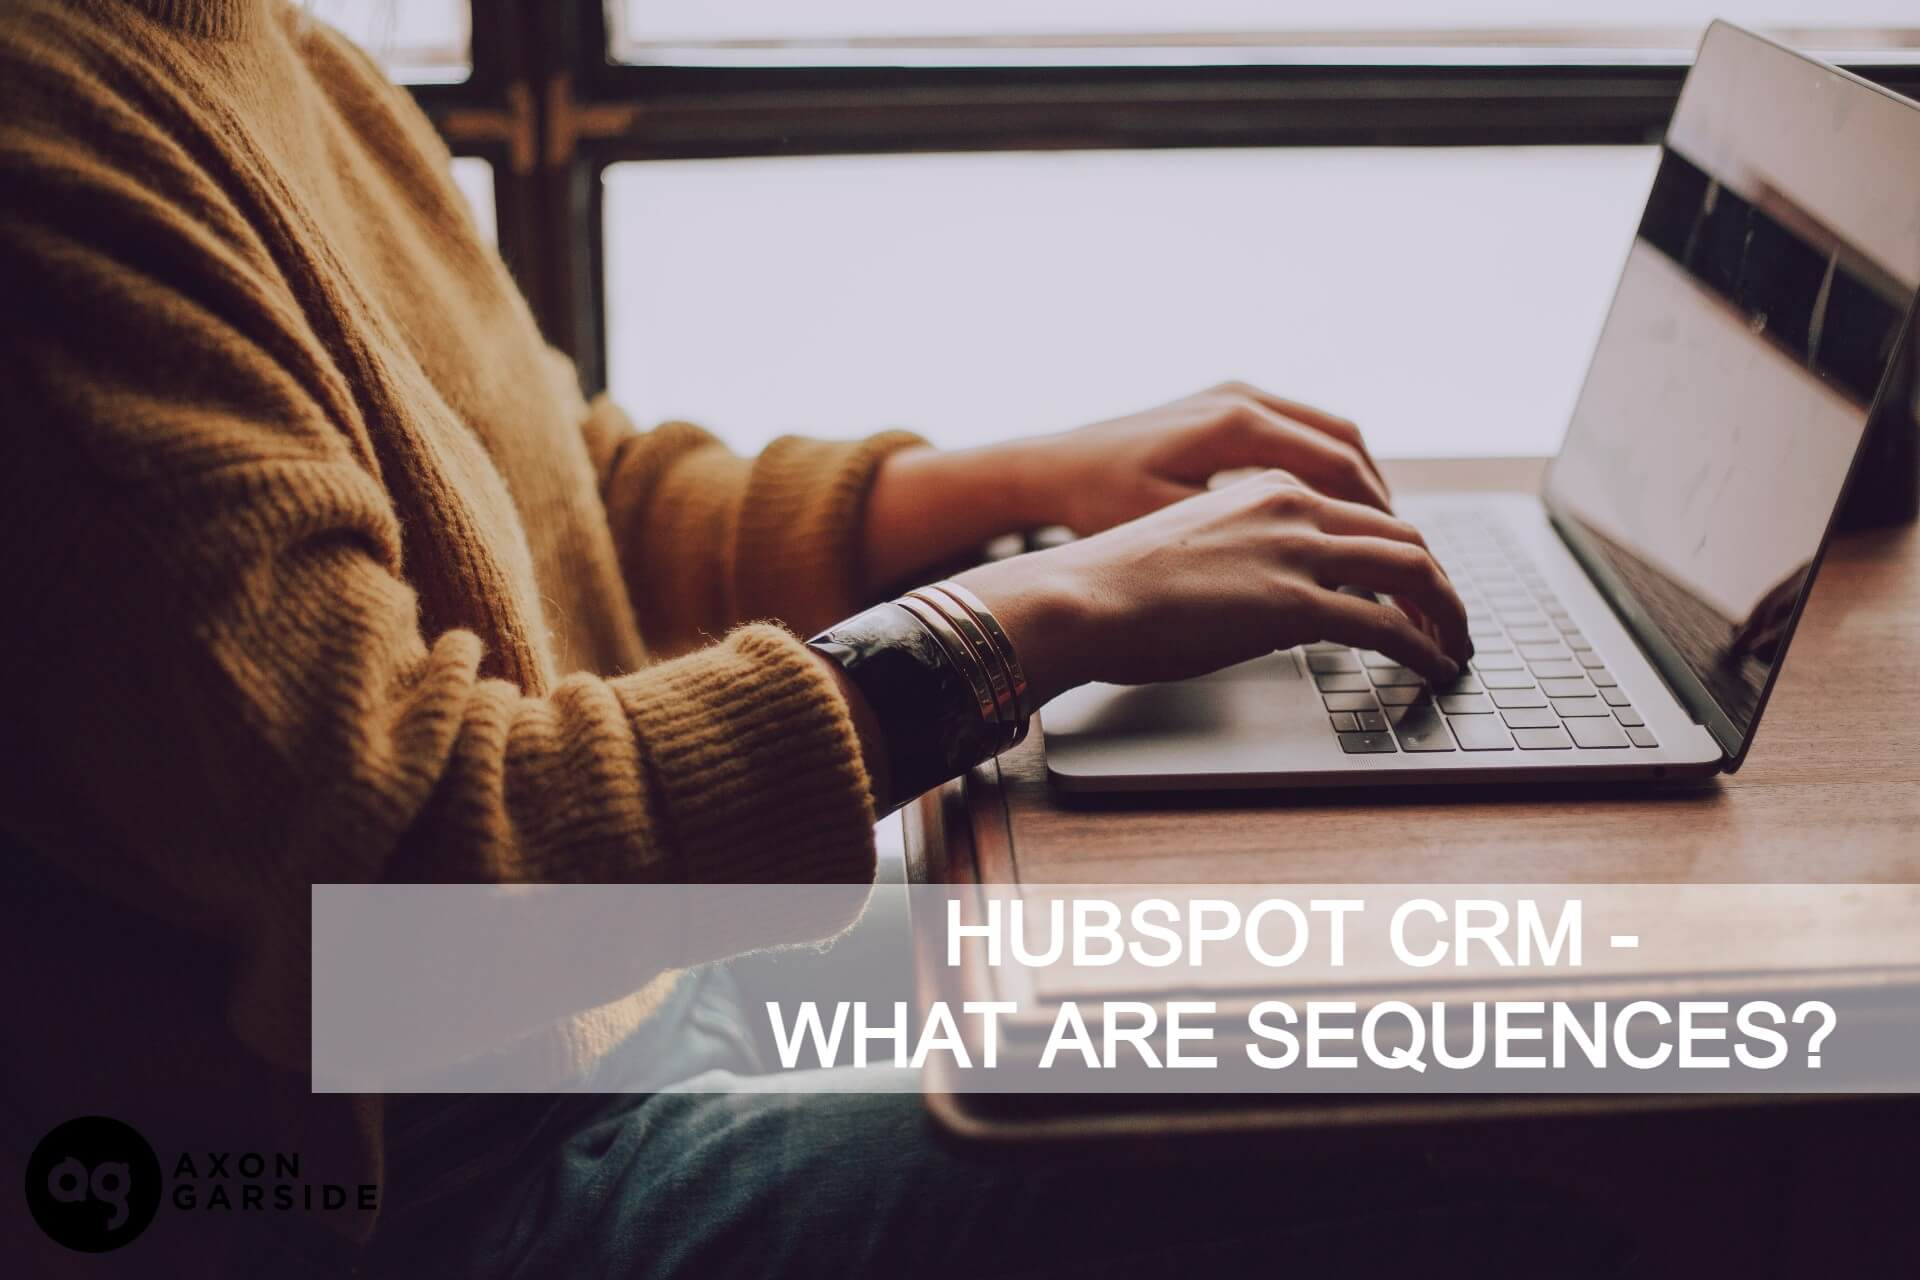 (Video) Hubspot CRM - What are Sequences?